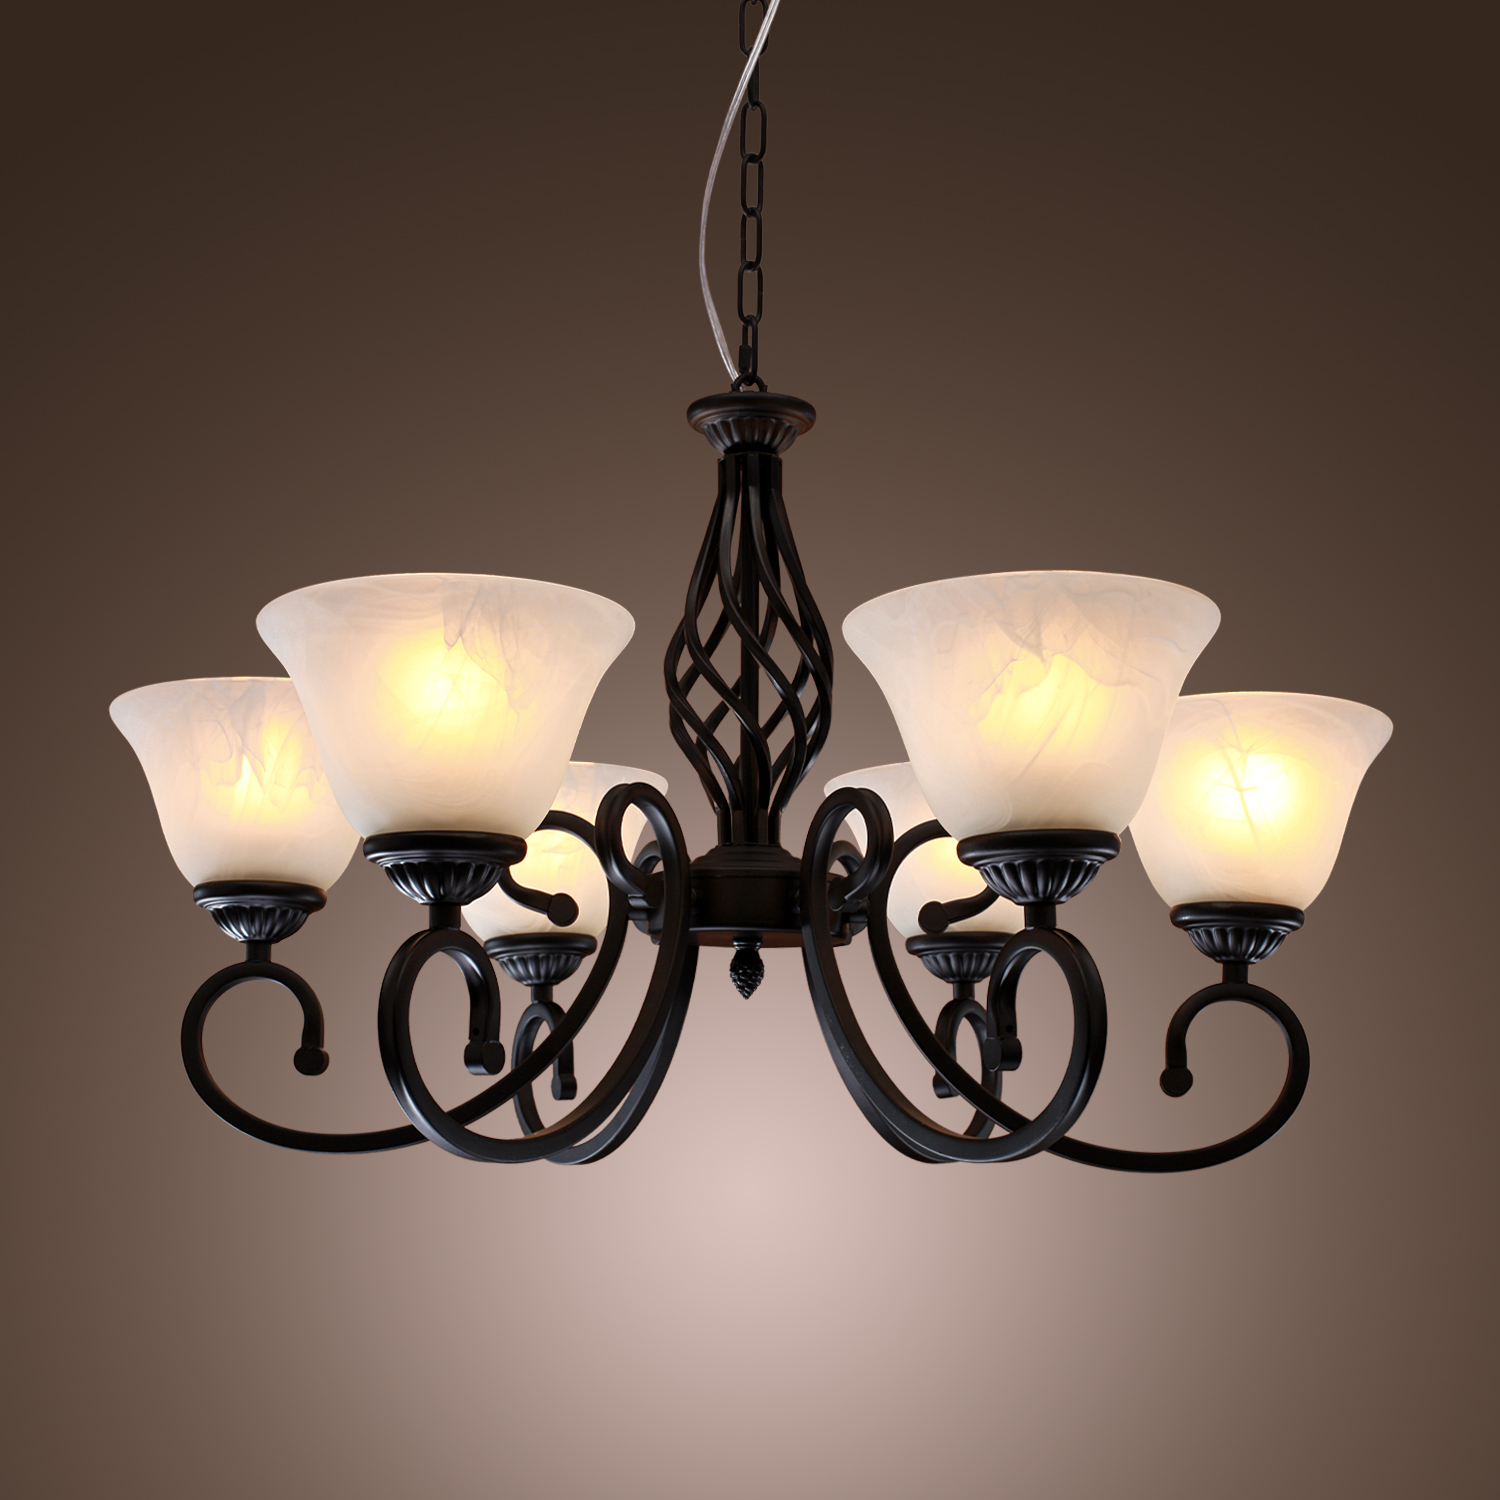 Chic metal black candle ceiling light fixture pendant lamp lighting chandelier ebay - Light fixtures chandeliers ...